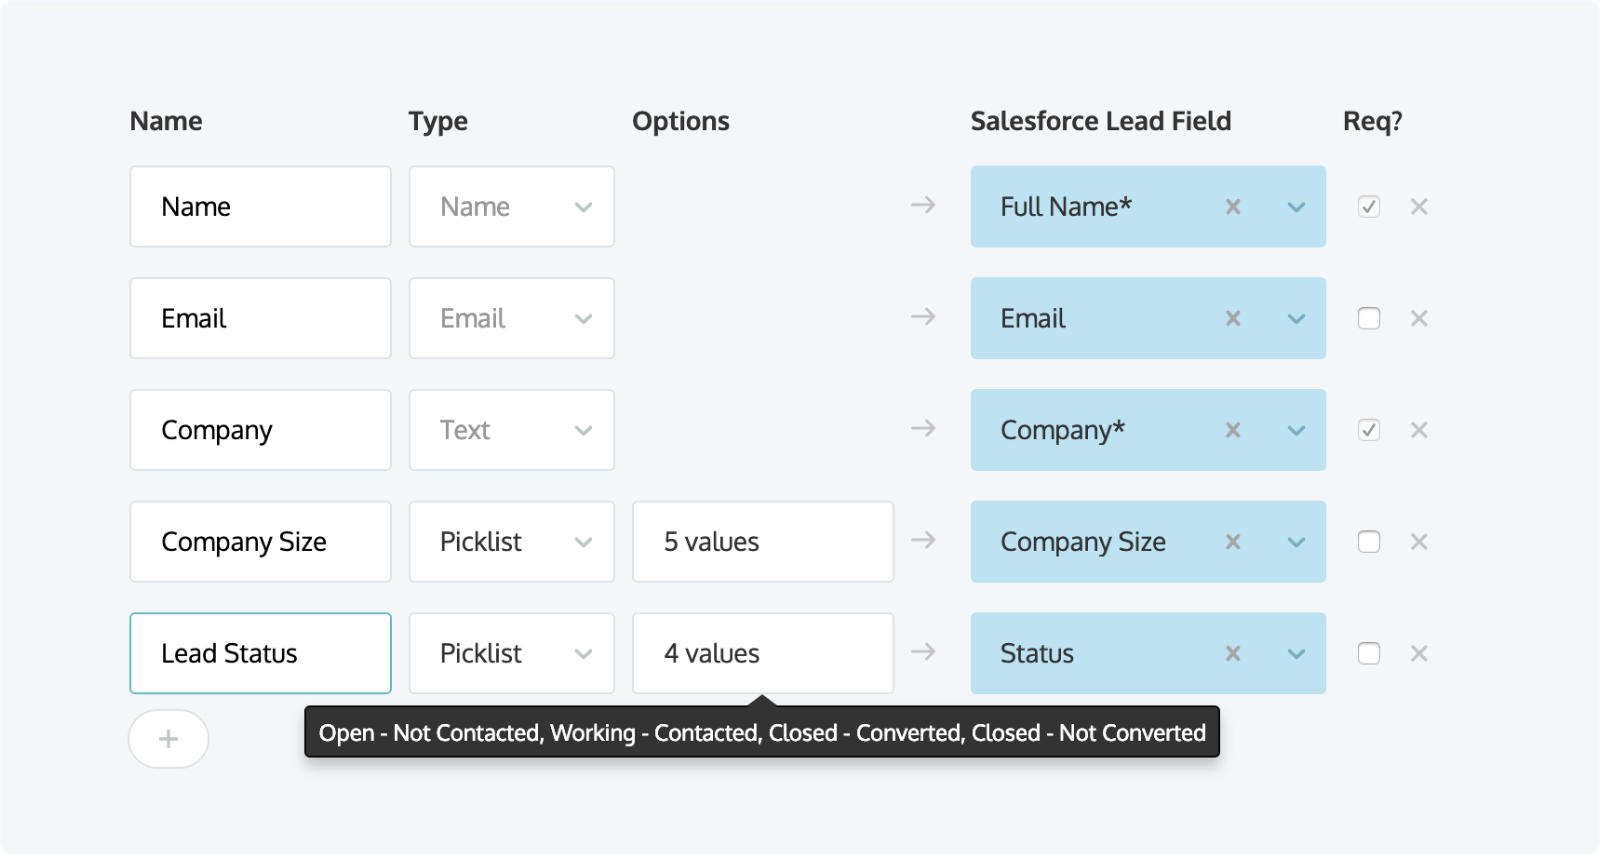 Mapping Lead Status to Salesforce which is important for Lead conversion